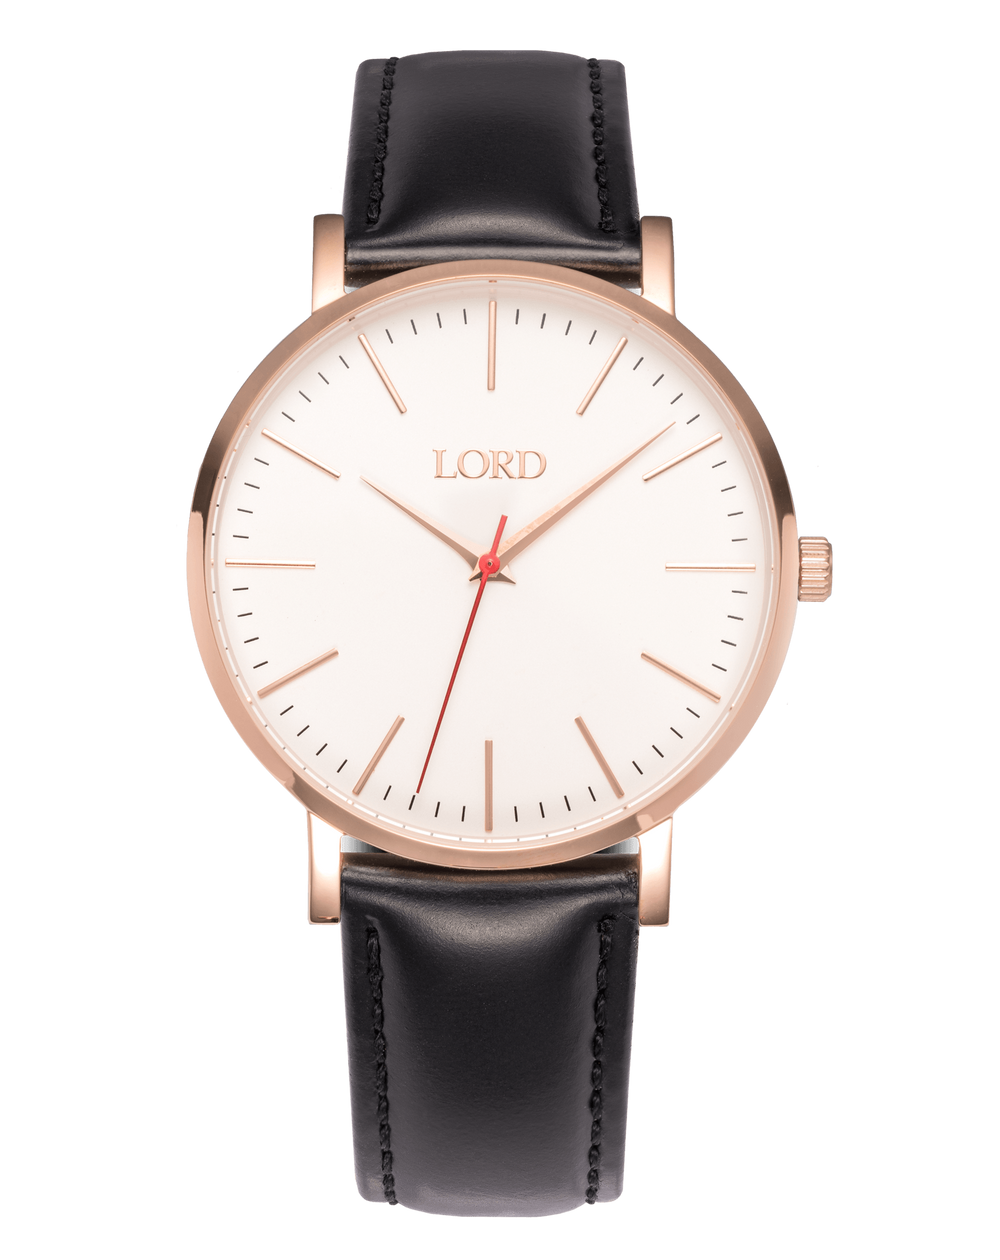 Rose Gold Black Leather Watch | Men's Watches | Lord Timepieces